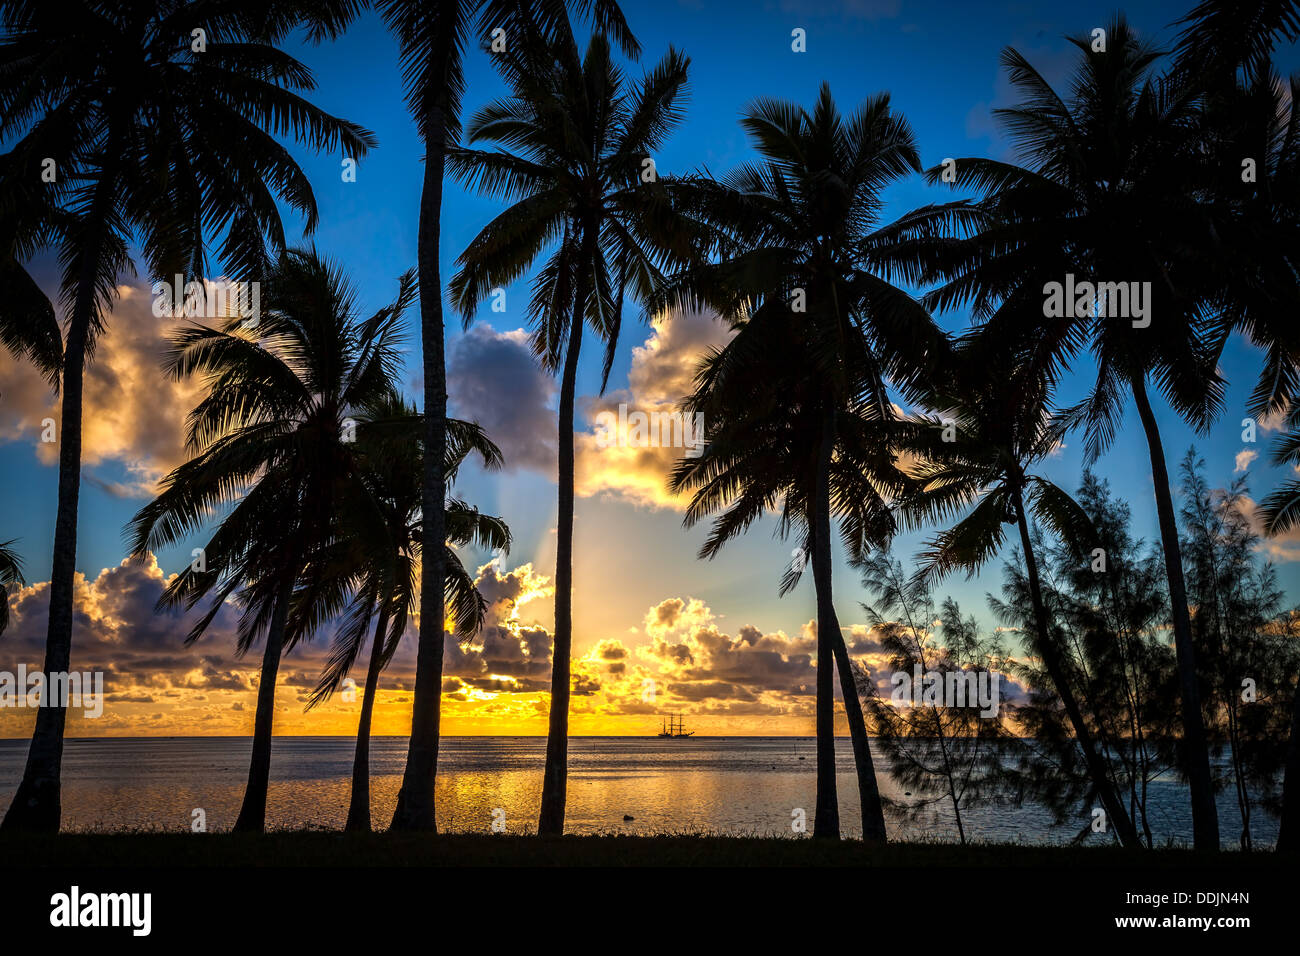 COOK ISLANDS, Aitutaki Island, tropical sunset colors in Amuri beach with a silhouette of palm trees framing a Tall Ship - Stock Image